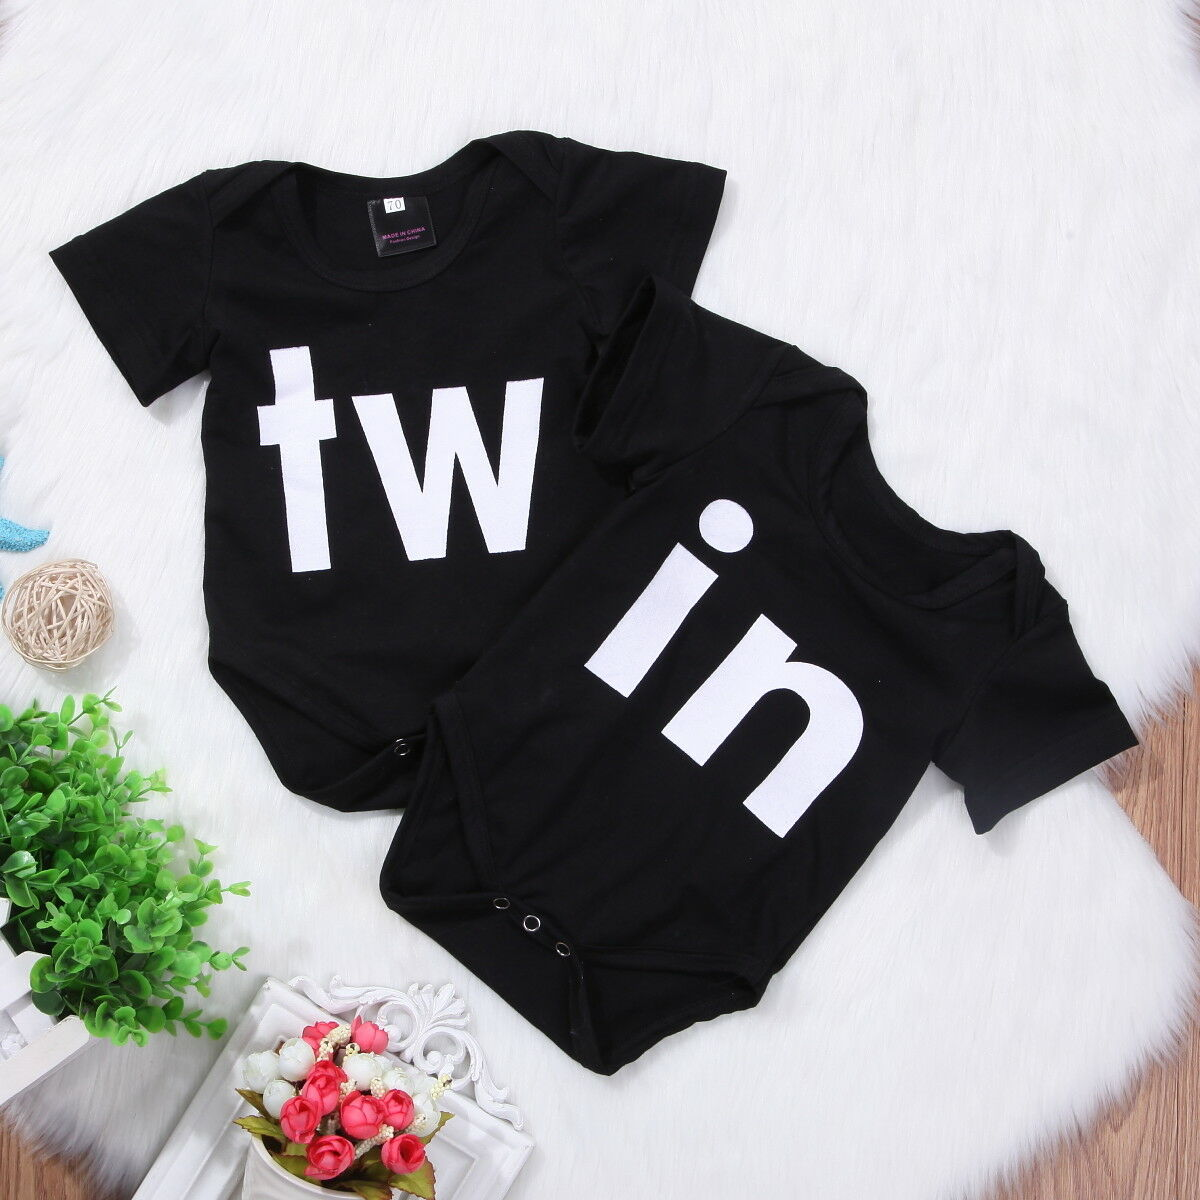 2019 Summer Short Sleeve Black Round Neck Twin Sunsuit Jumpsuit Clothes Clothing Outfits Newborn Infant Baby Girl Boy Bodysuit